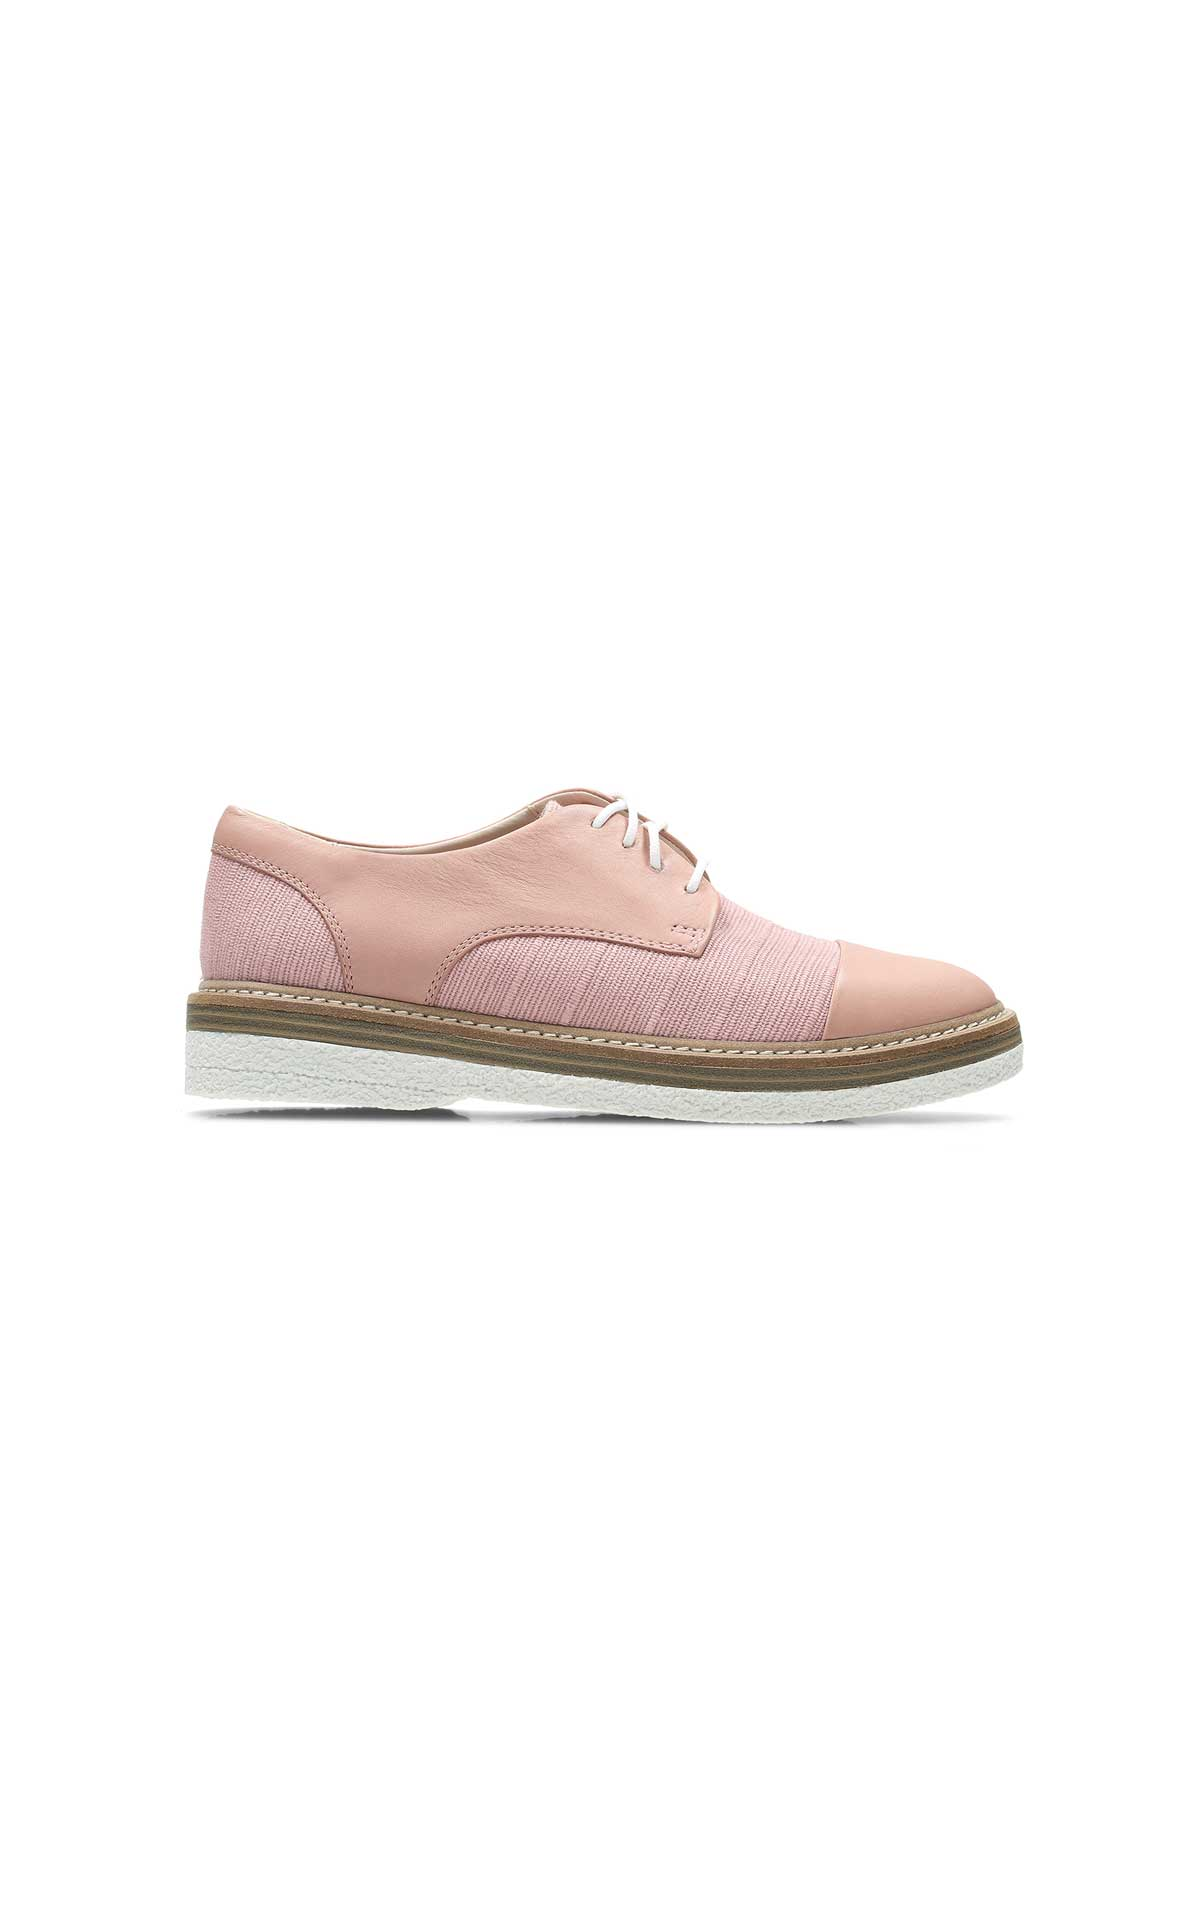 Clarks Zante sienna at The Bicester Village Shopping Collection